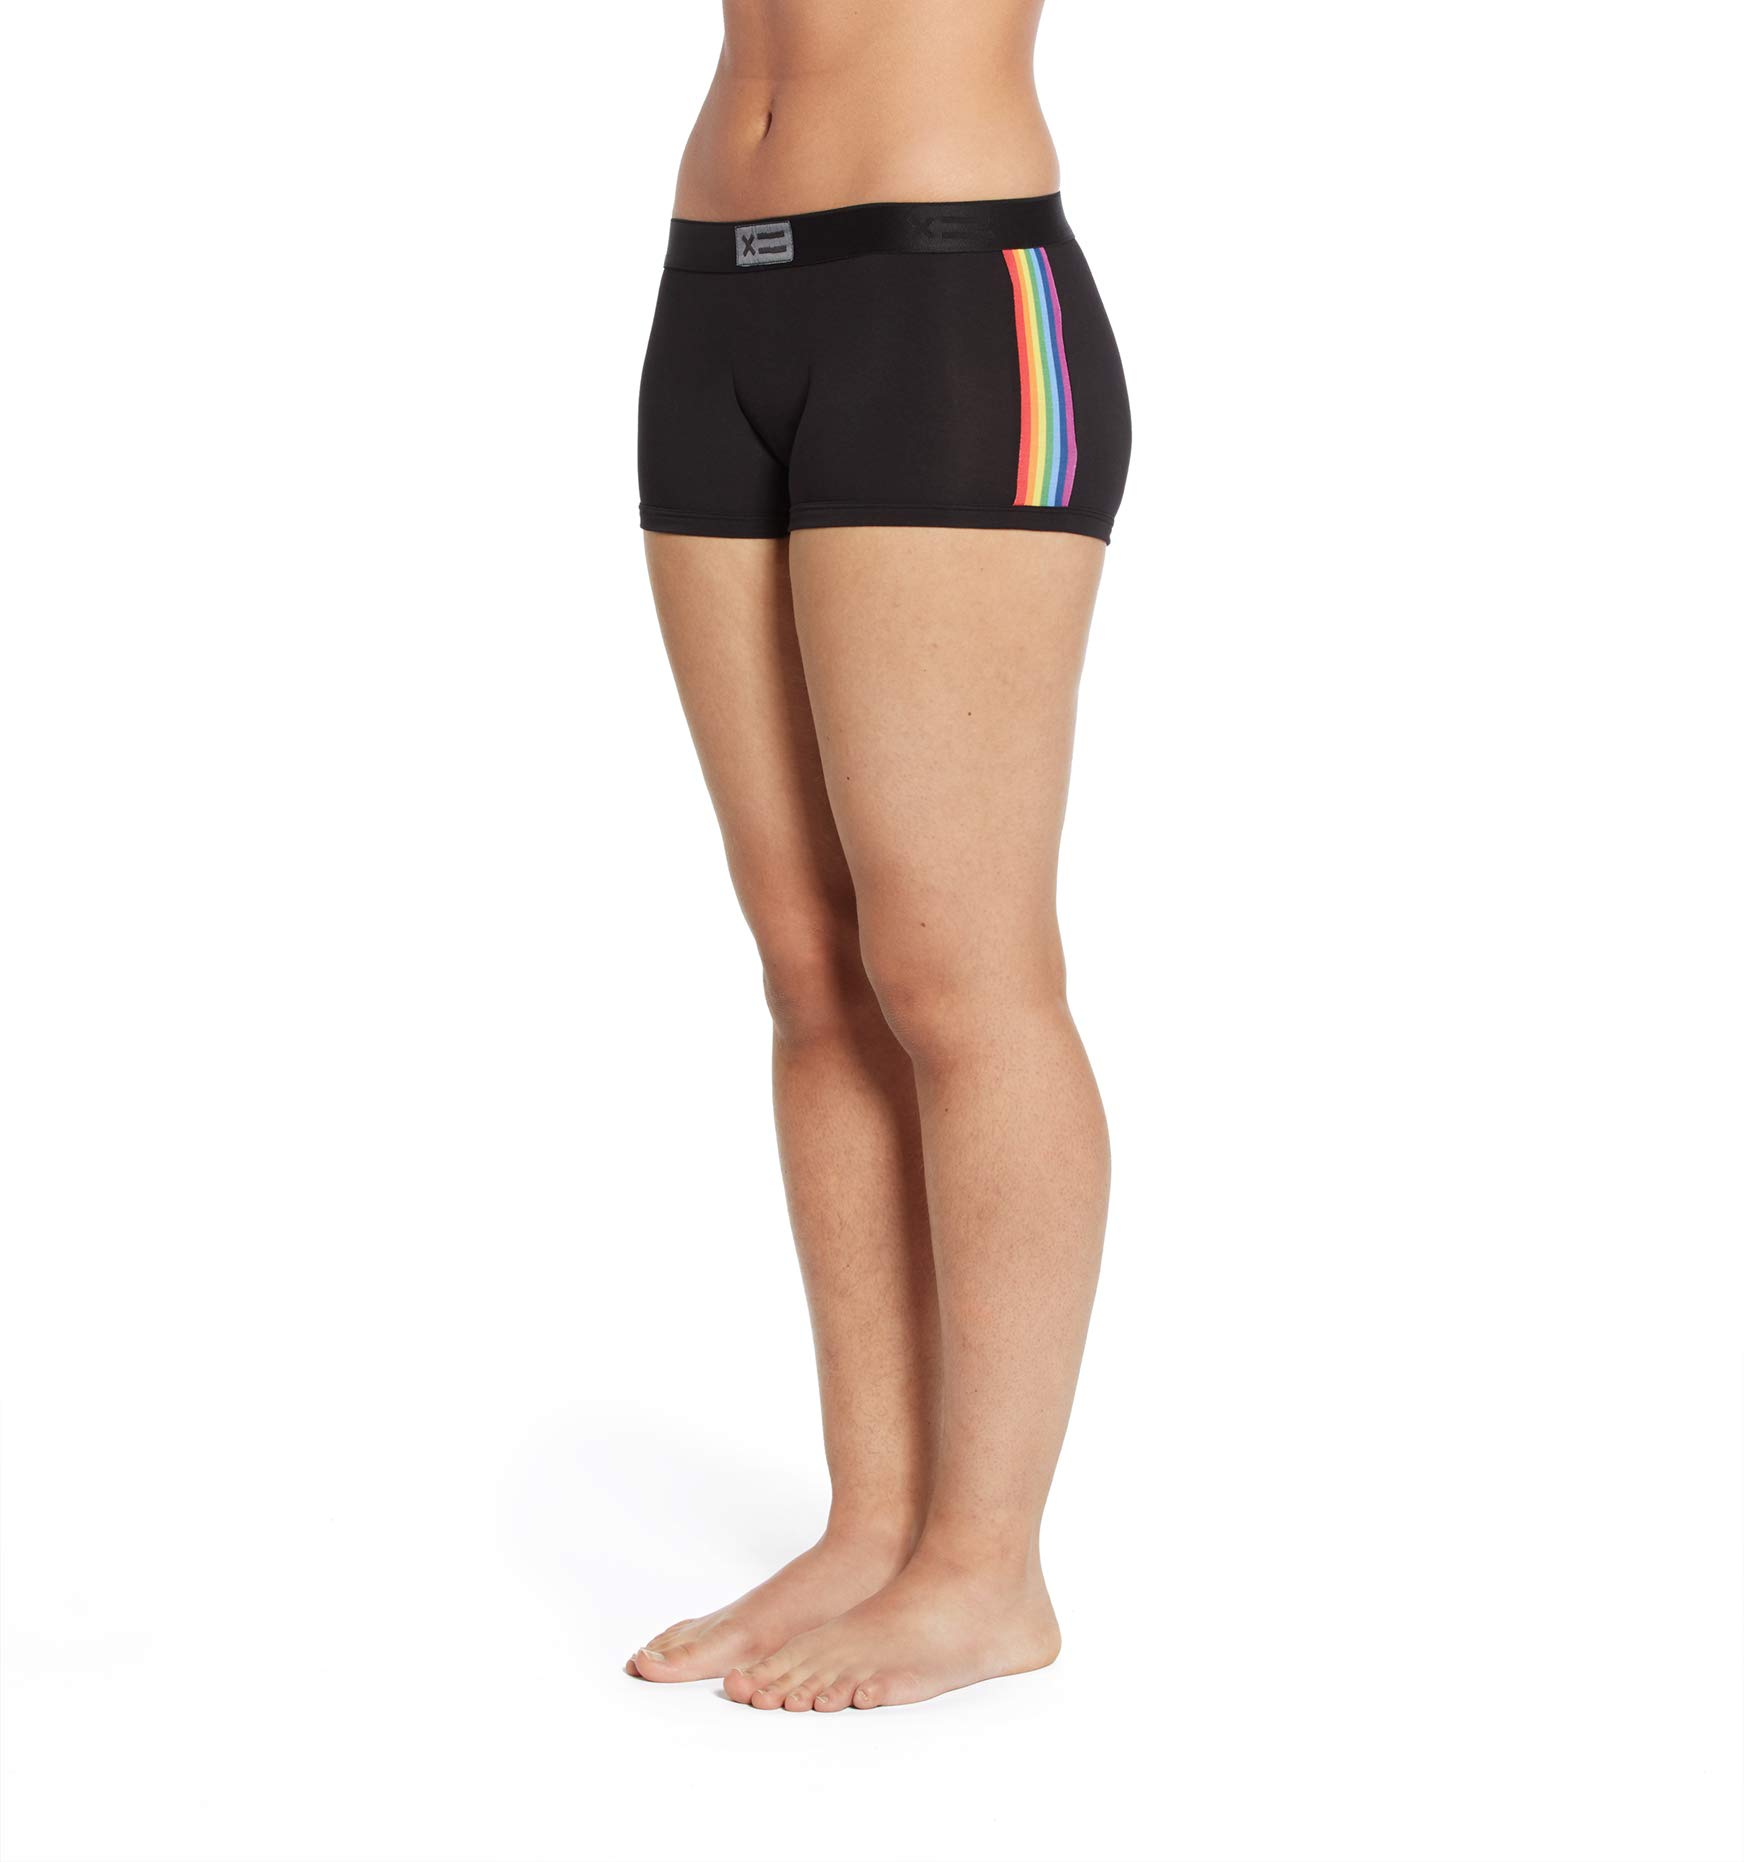 TomboyX Boy Shorts Underwear, Micromodal Stretchy and Soft All Day Comfort (XS to 4X)